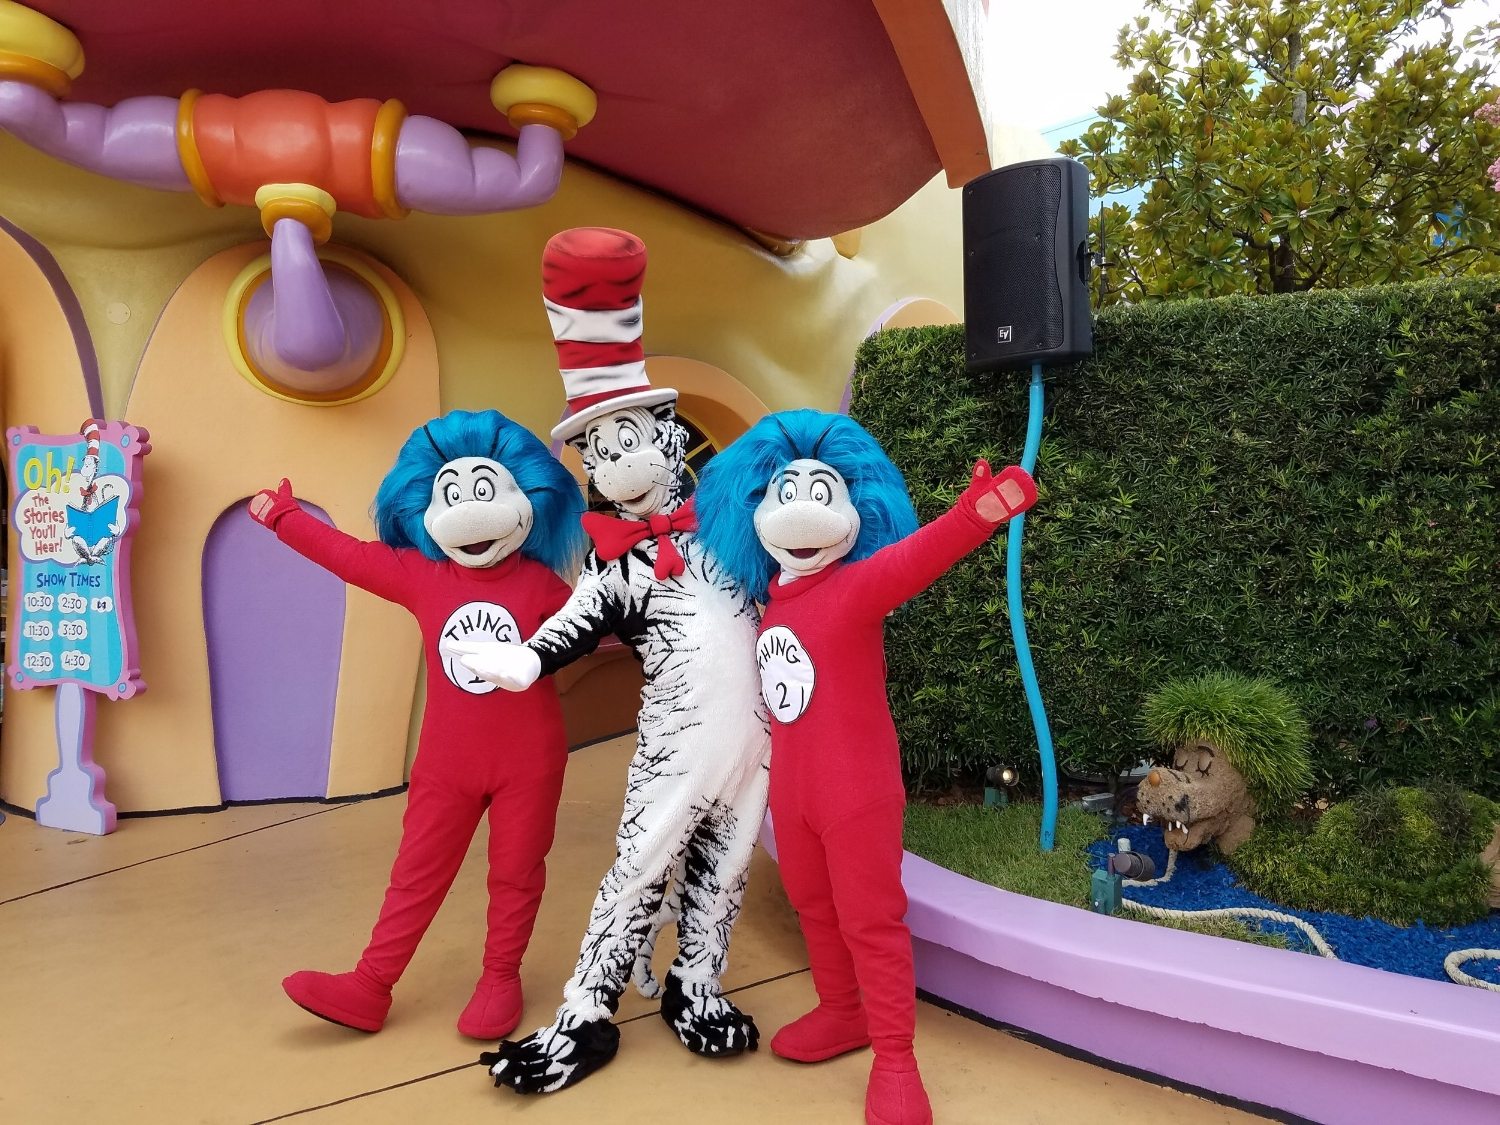 The Cat in the Hat and Thing 1 and Thing 2